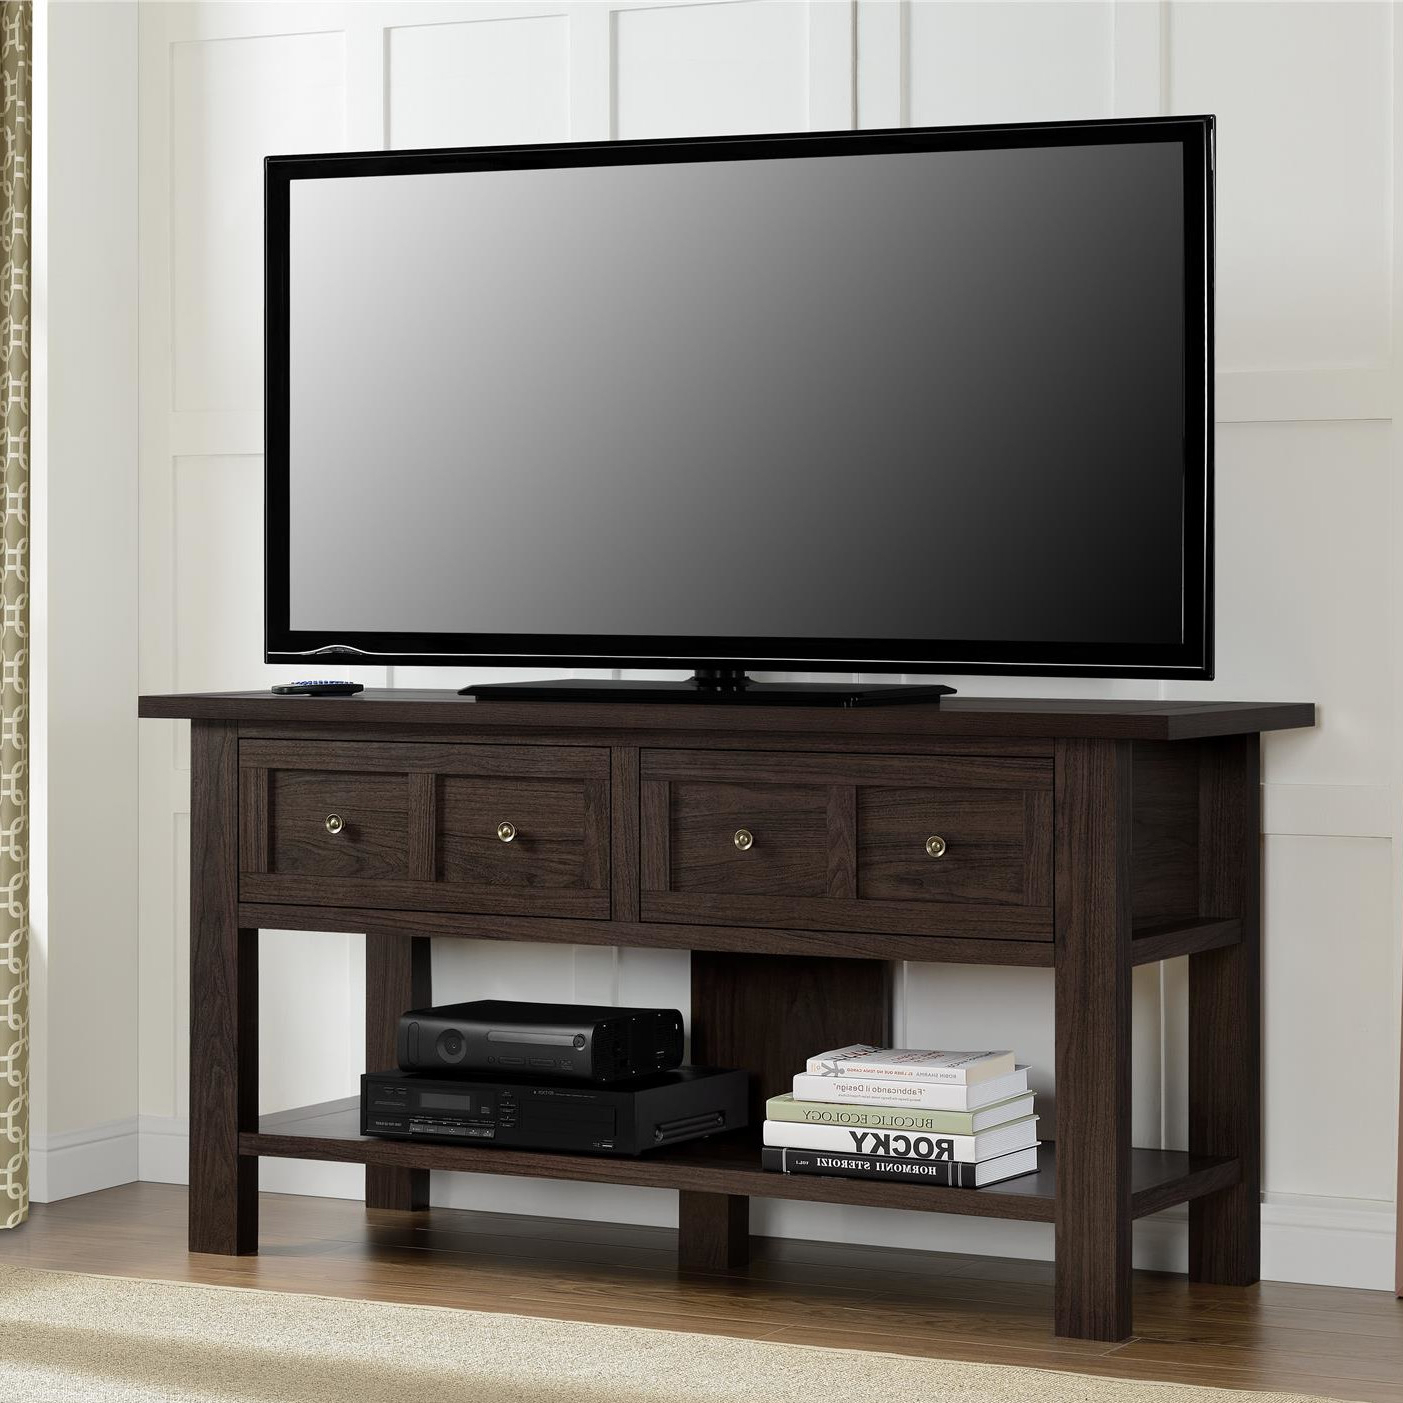 Most Recently Released August Grove Loanne Tv Stand Reviews Wayfair Glass And Wood Console Regarding Wayfair Corner Tv Stands (Gallery 18 of 20)